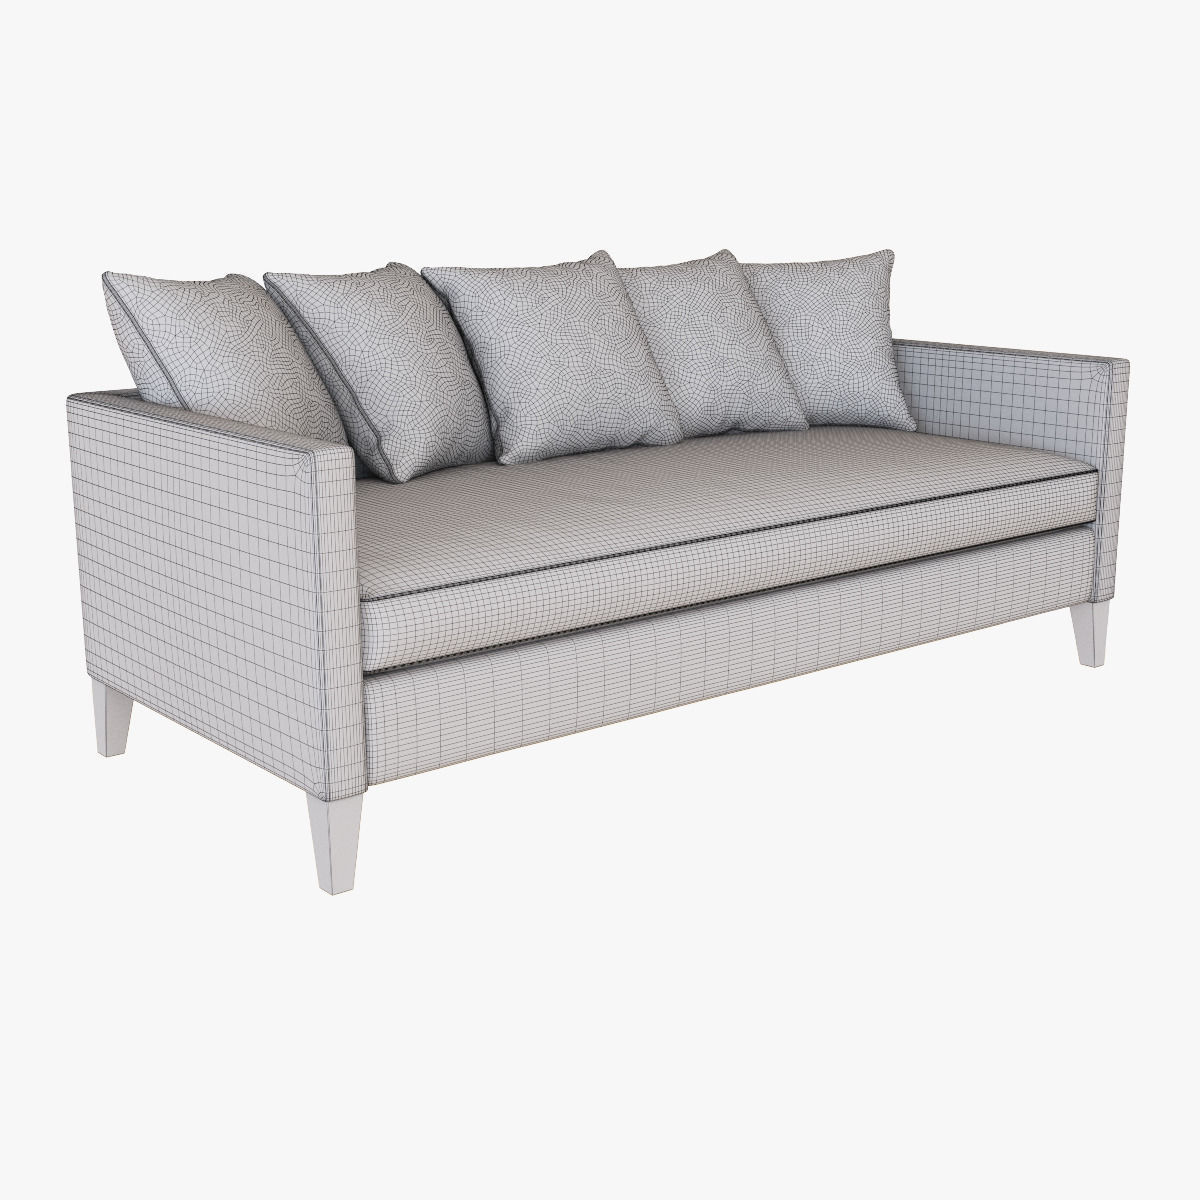 dunham sofa modern bed sectional west elm down filled toss back 3d model max obj mtl fbx